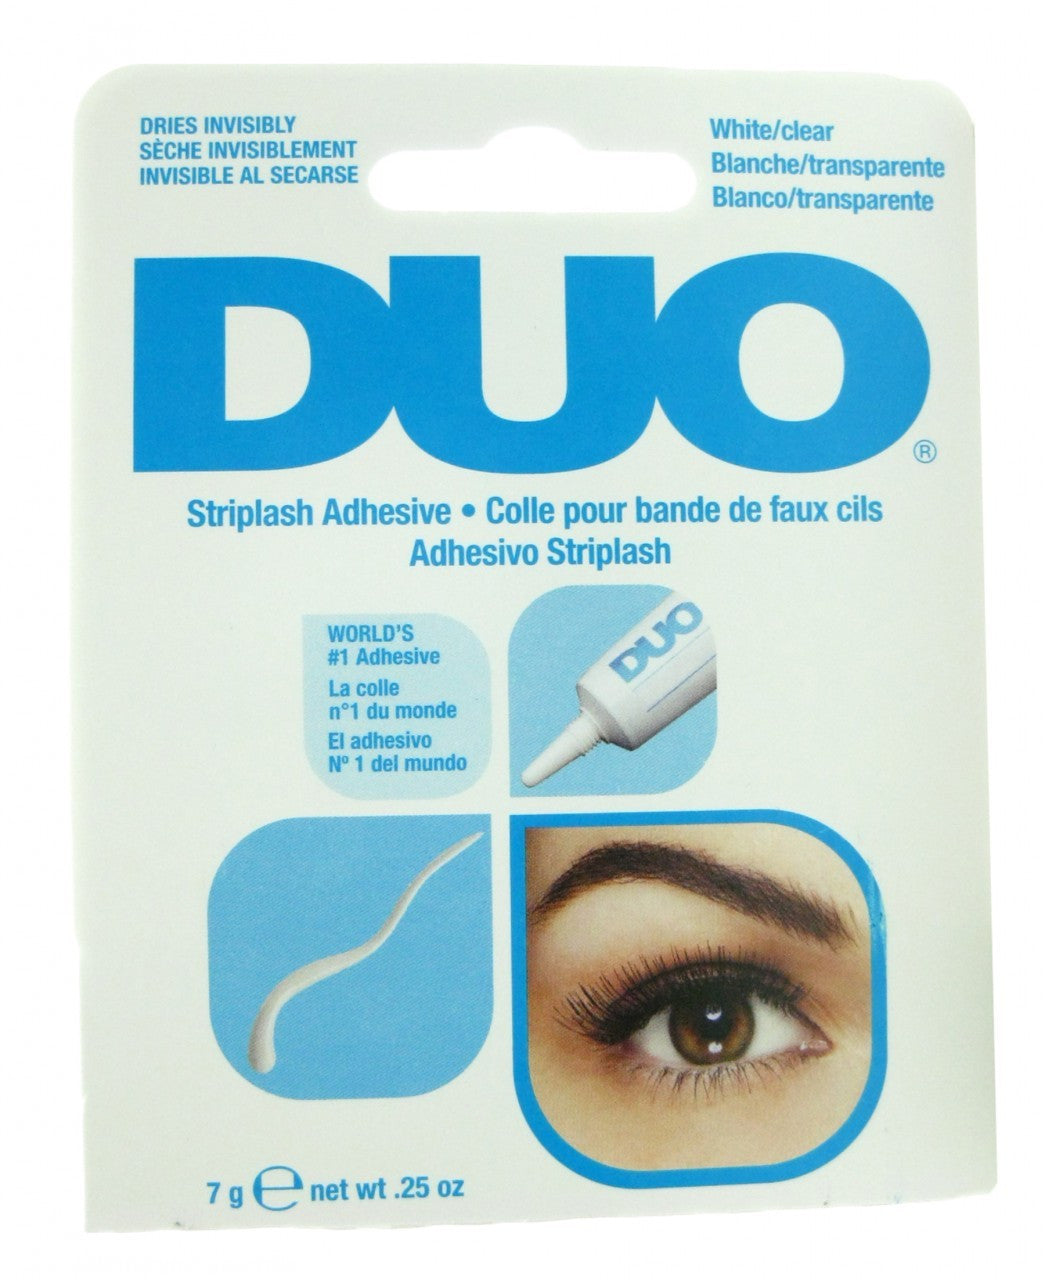 DUO-CLEAR, view larger image